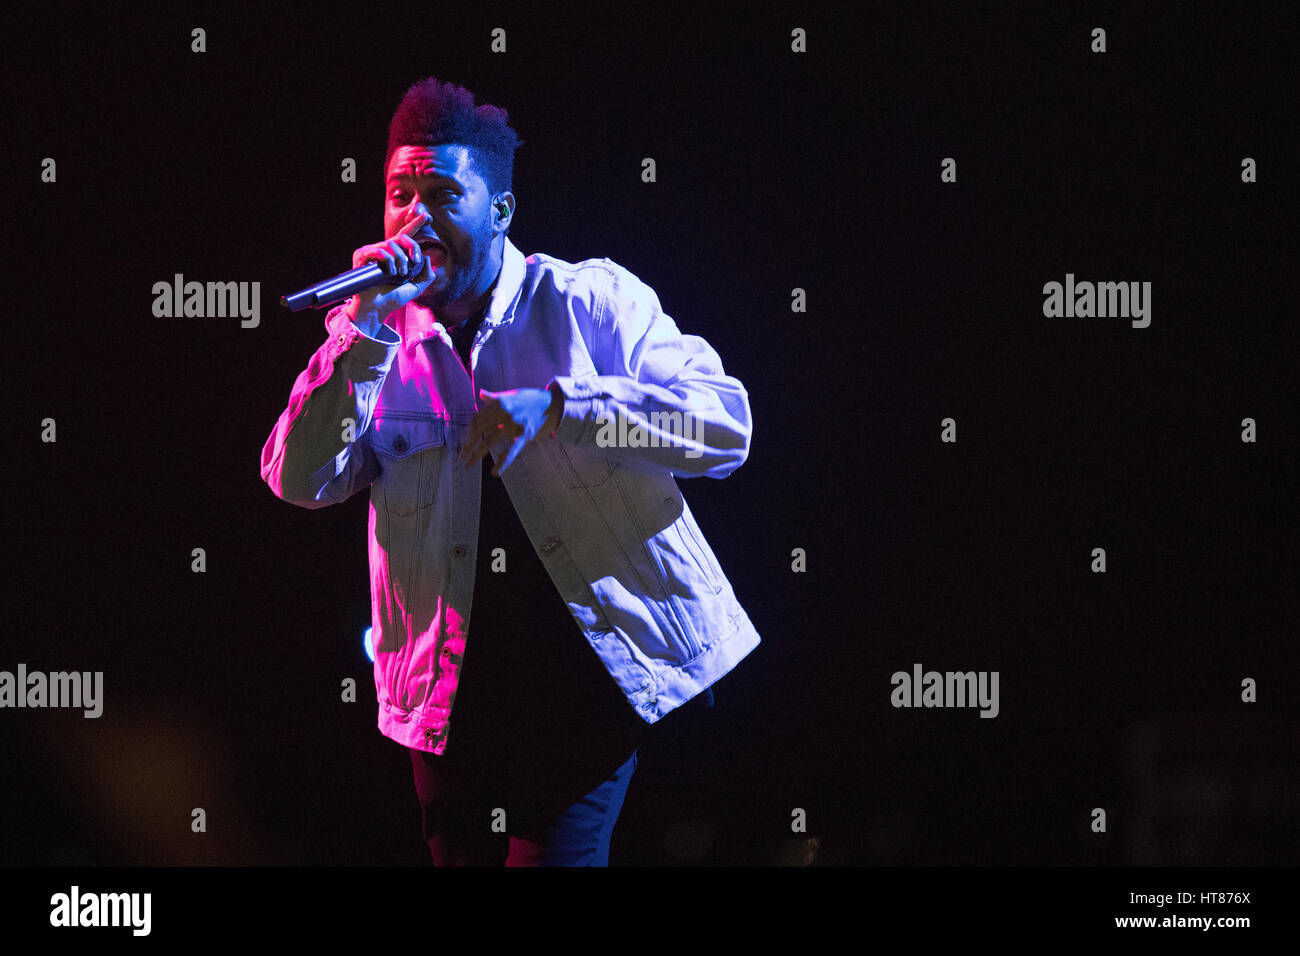 London, UK. 08th March, 2017. London, England, Abel Makkonen Tesfaye of The Weeknd, performs his second night at Stock Photo